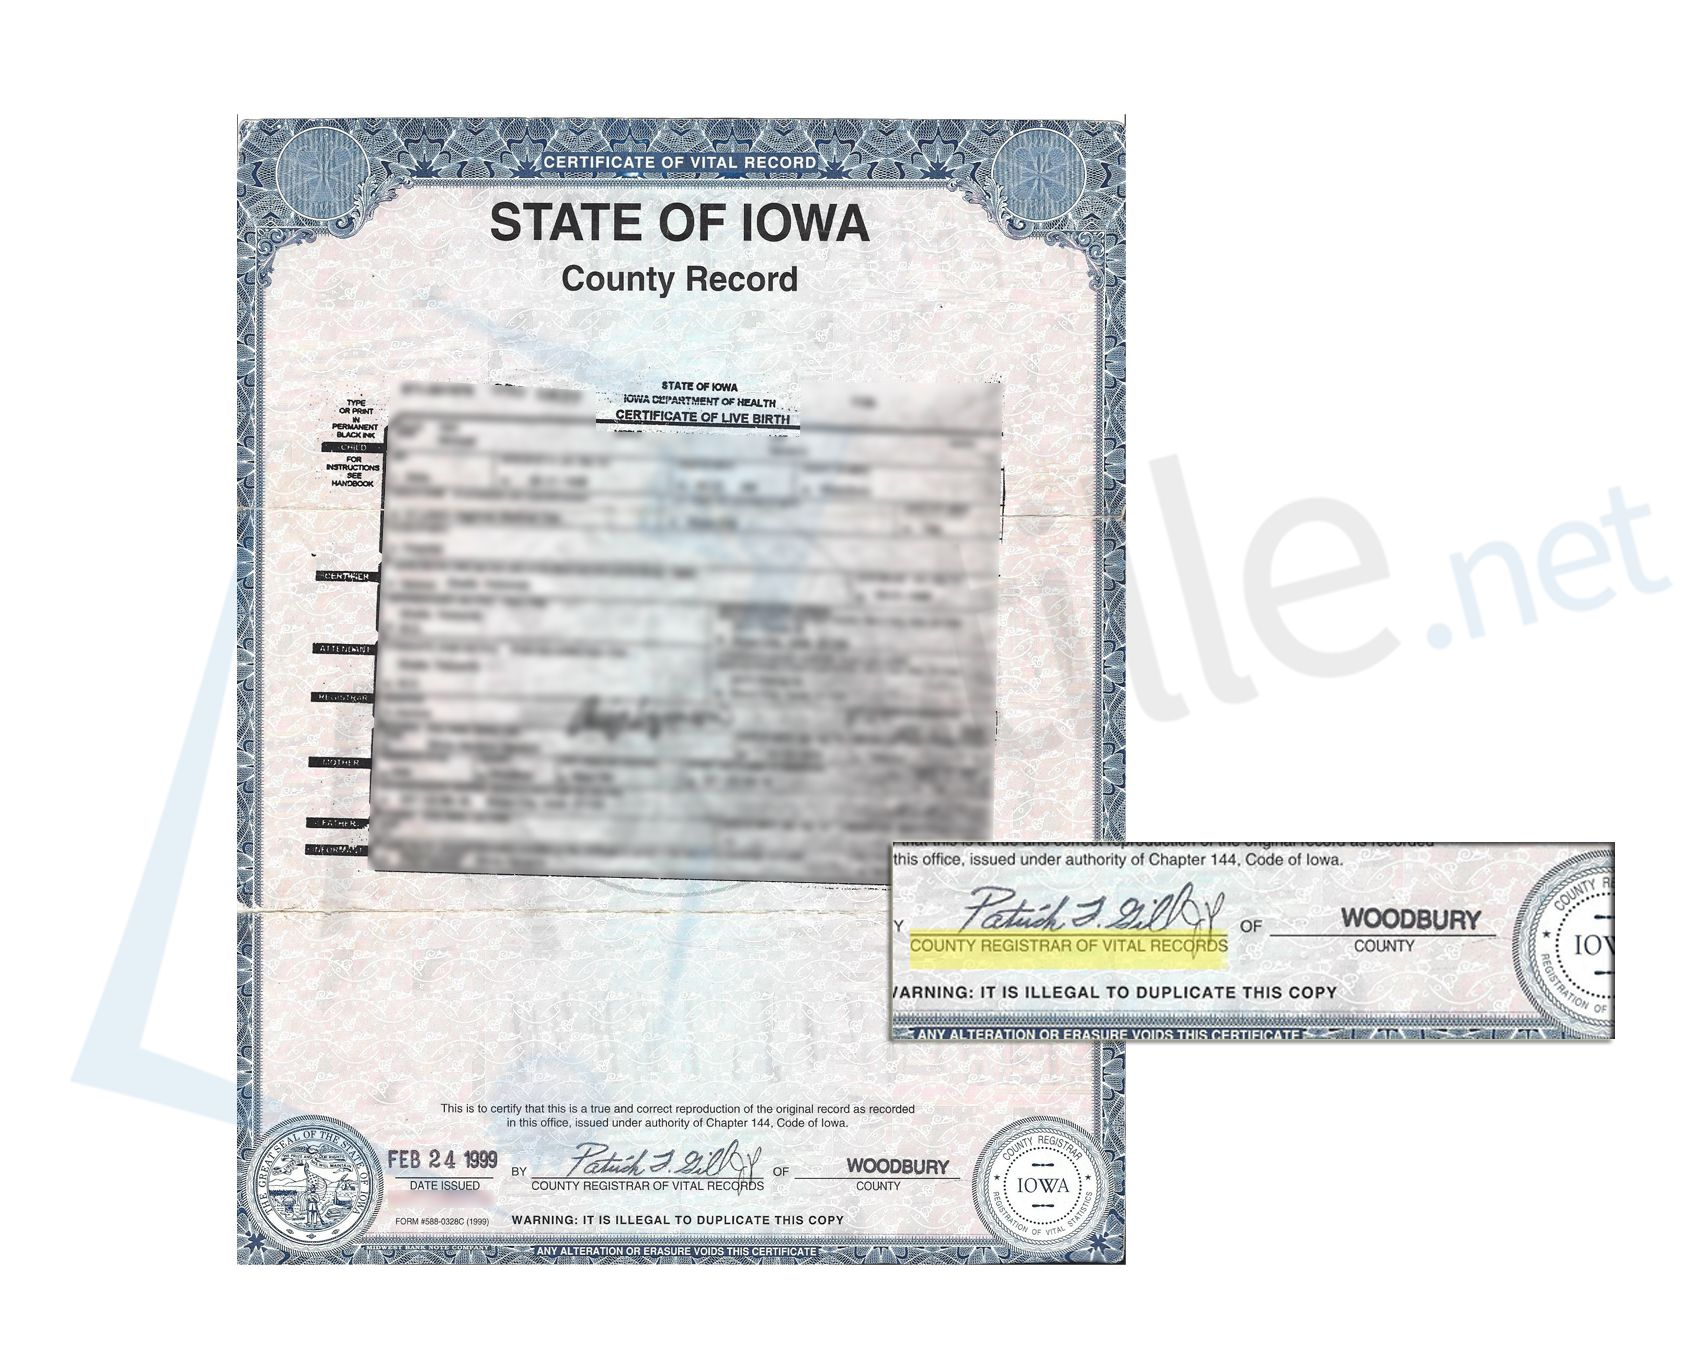 Iowa Birth Certificate signed by the Woodbury County Registrar – Birth Certificate Sample